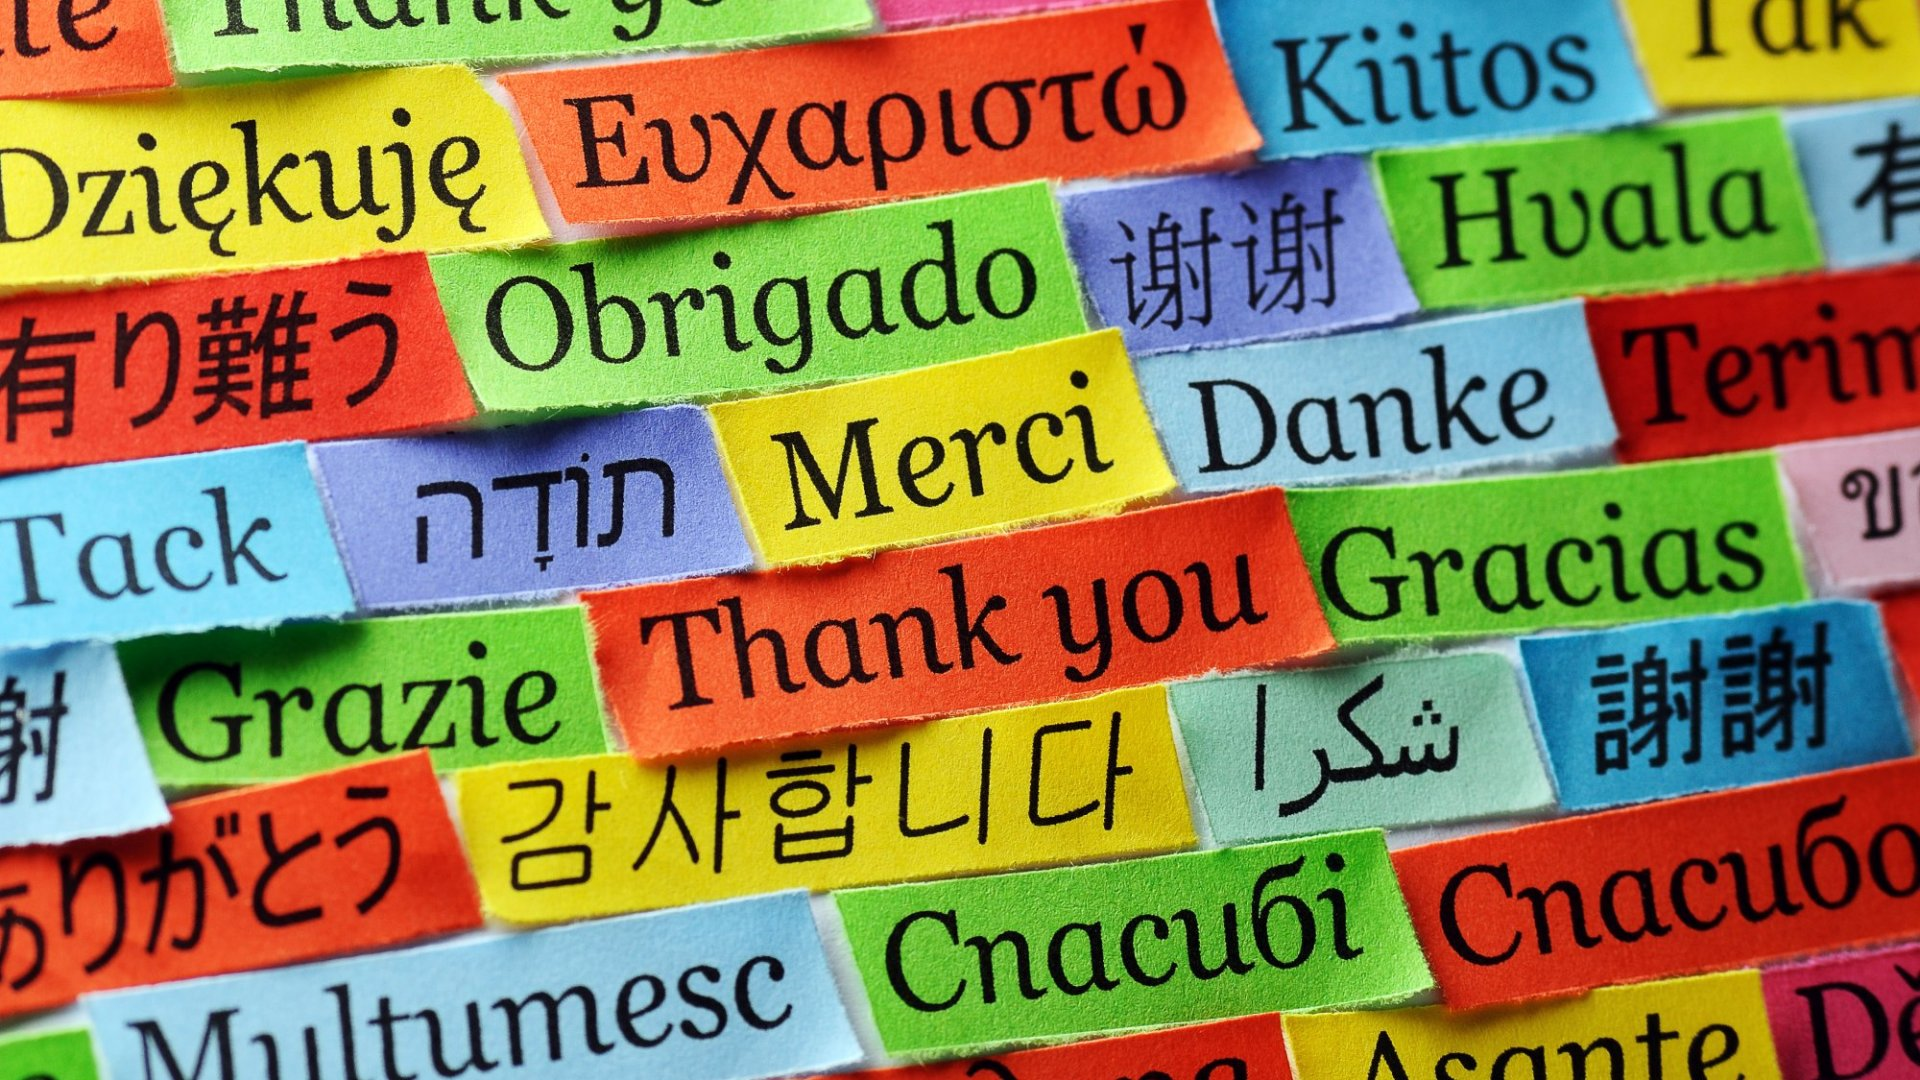 Learn more languages. It'll help you with business.